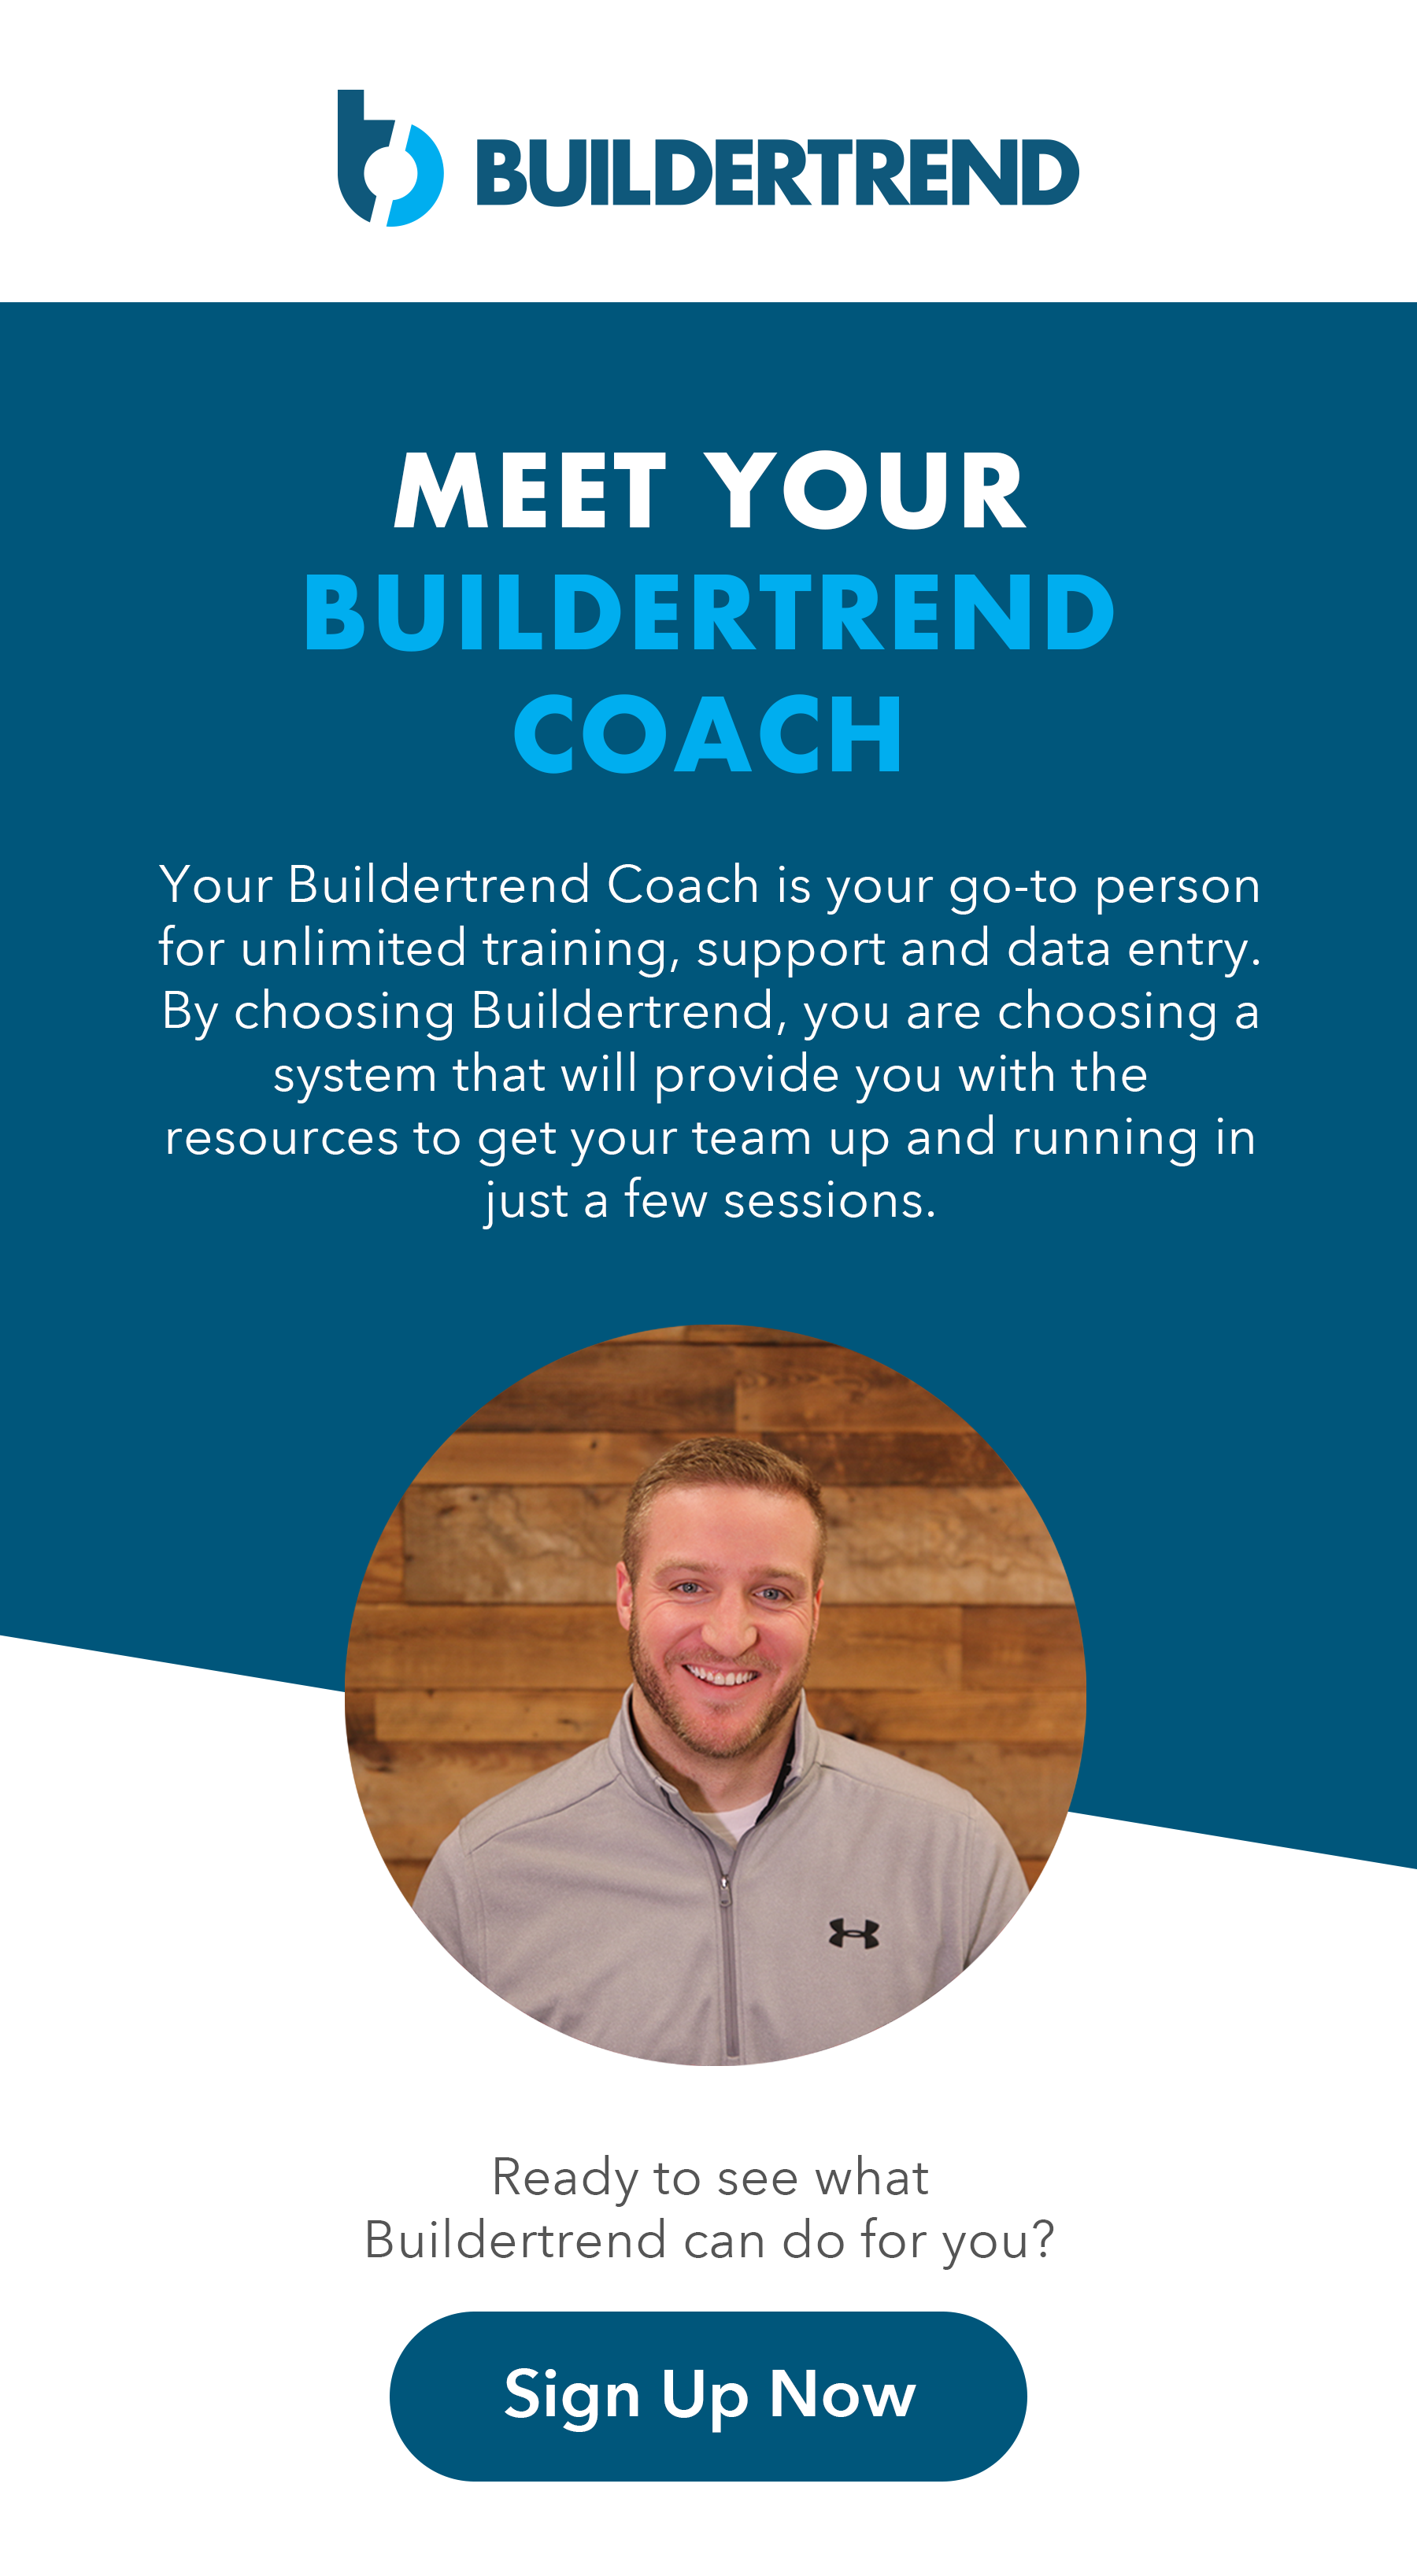 meet your buildertrend coach - sign up now